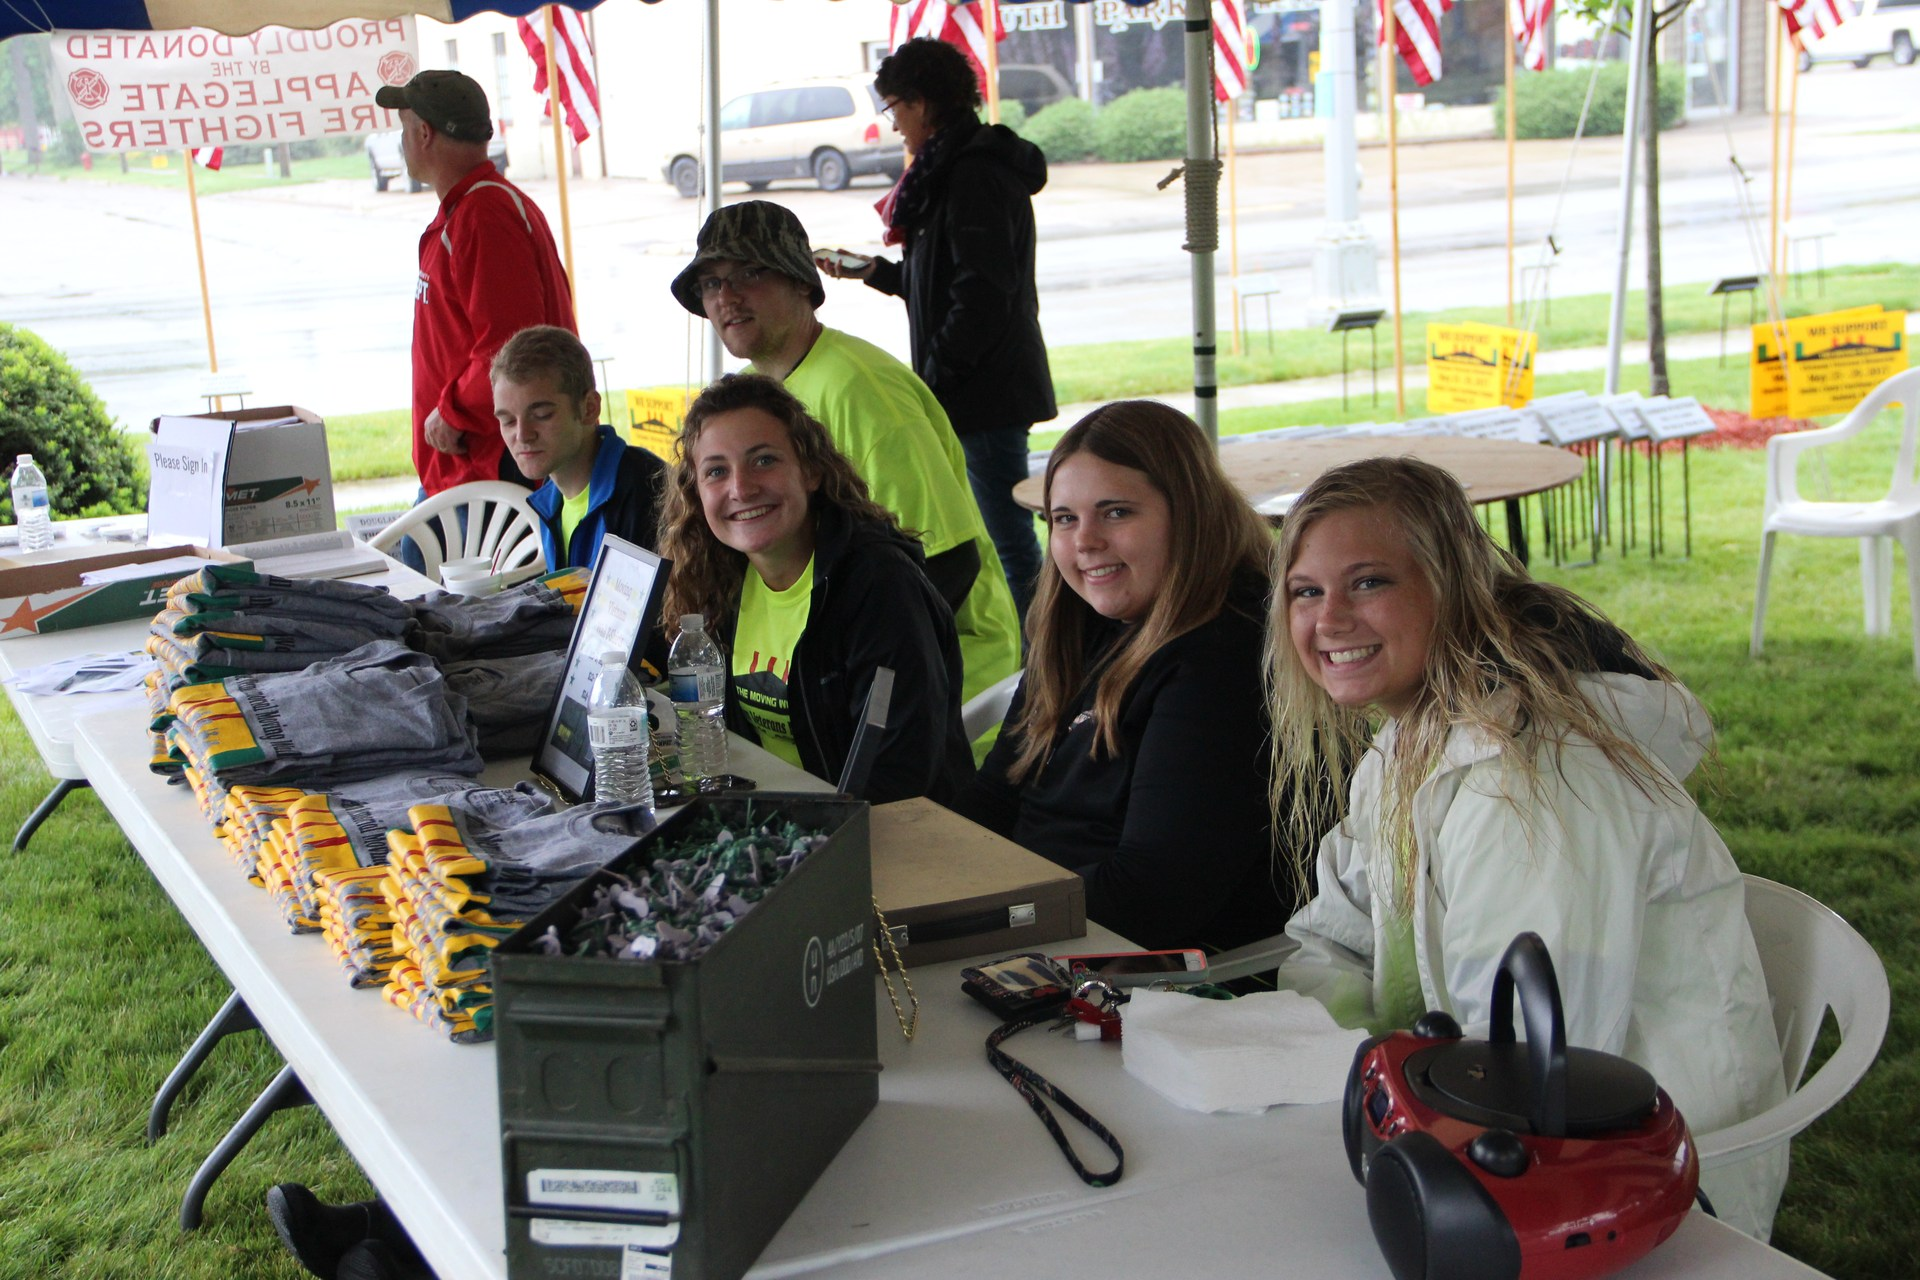 Students run the information tent.